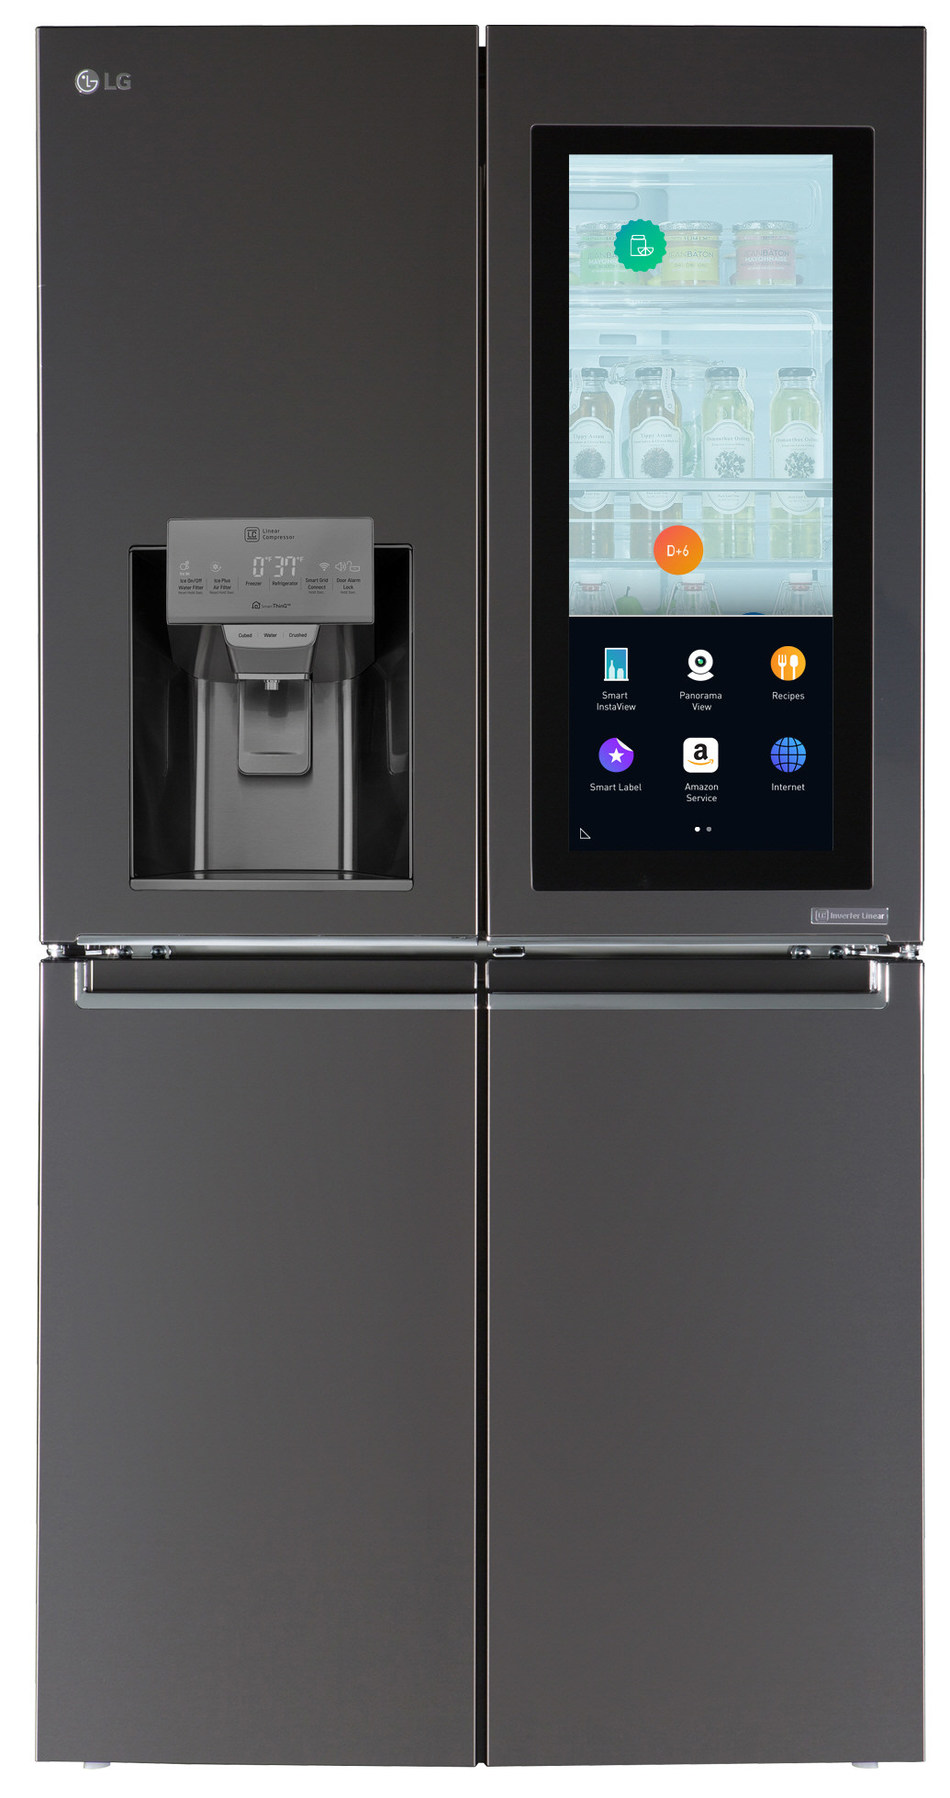 LG Electronics (LG) has introduced a new kind of refrigerator, called Smart InstaView(TM) that's embedded with an array of convenient features provided by Amazon's Alexa Voice Service and powered by LG's own webOS smart platform.